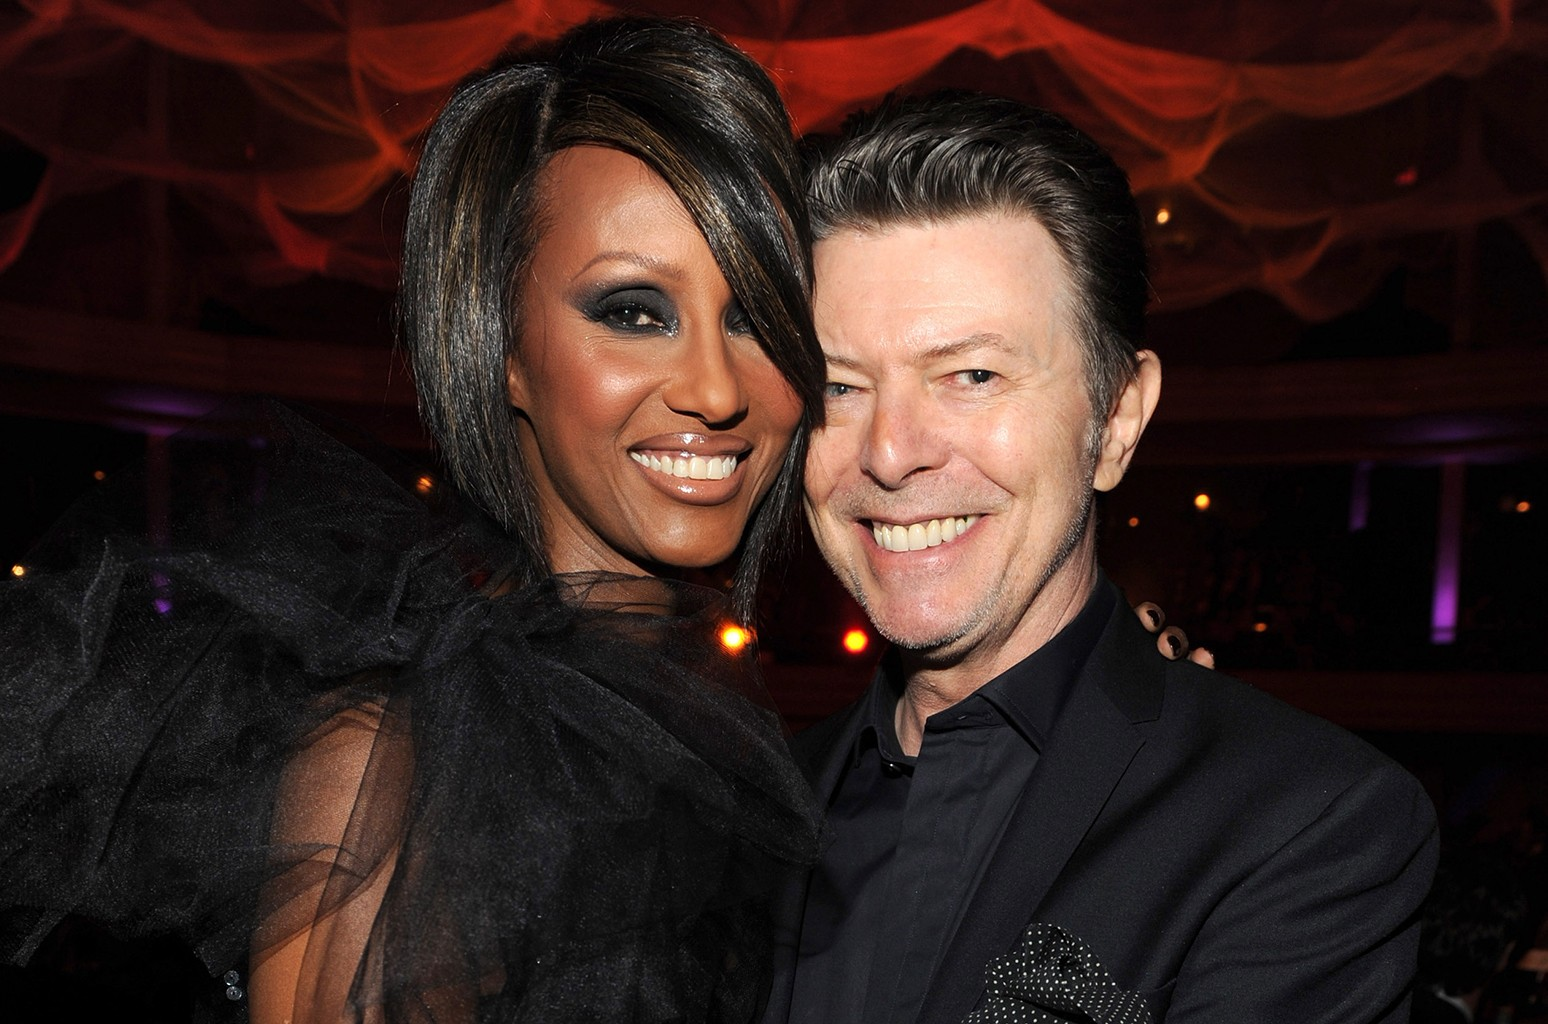 Iman and David Bowie at Hammerstein Ballroom on Oct. 15, 2009 in New York City.